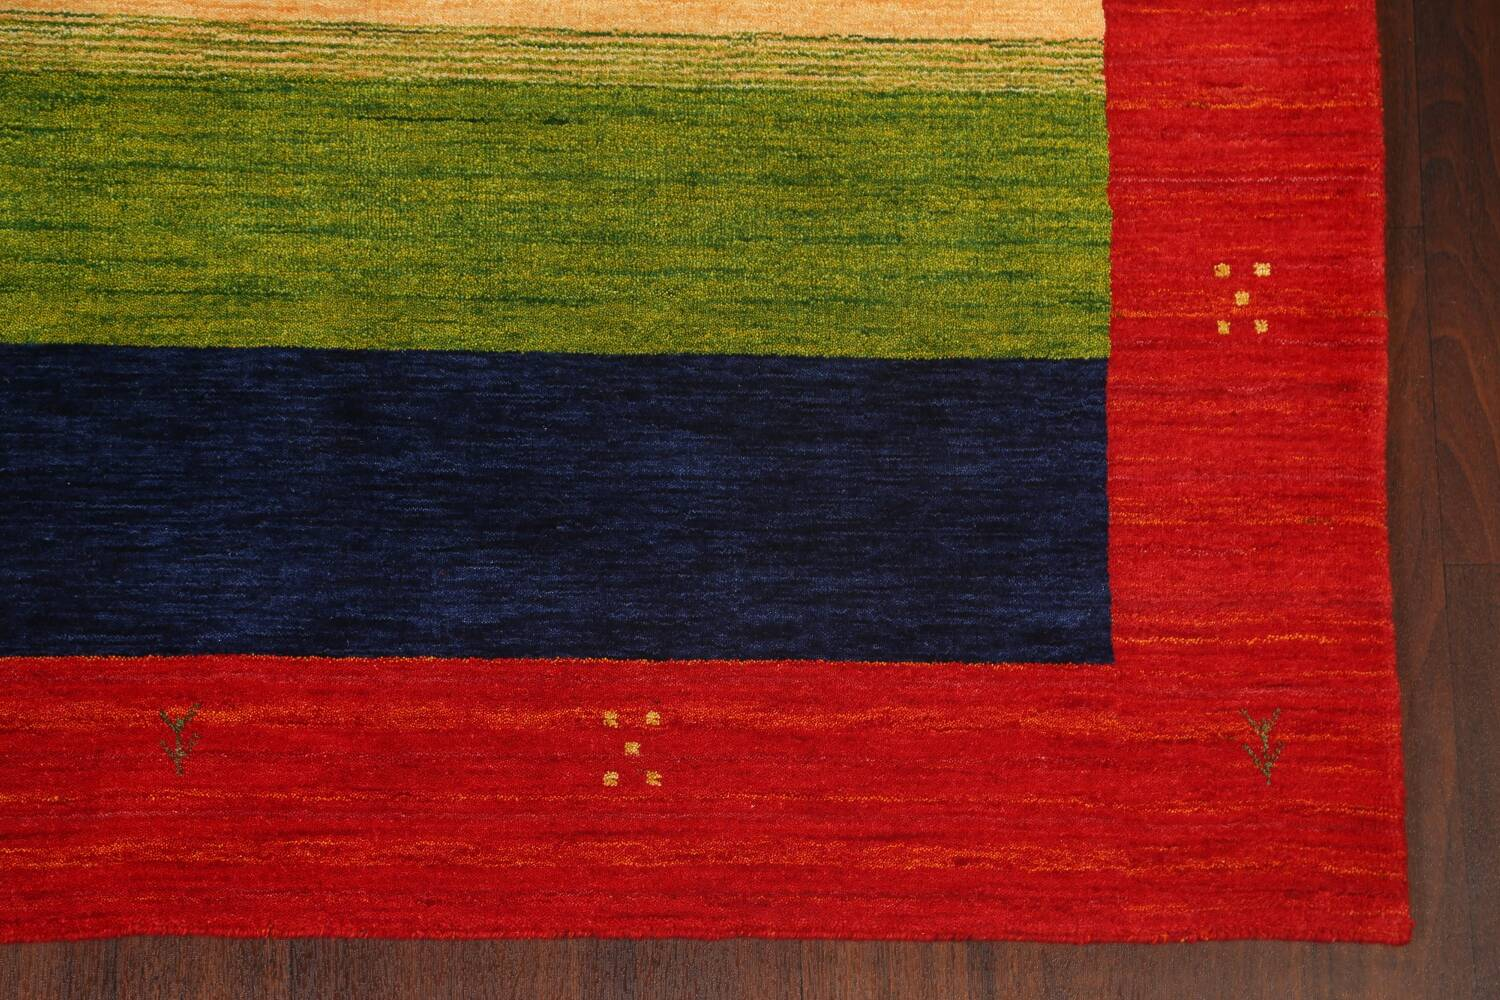 Abstract Contemporary Gabbeh Oriental Area Rug 6x8 image 5